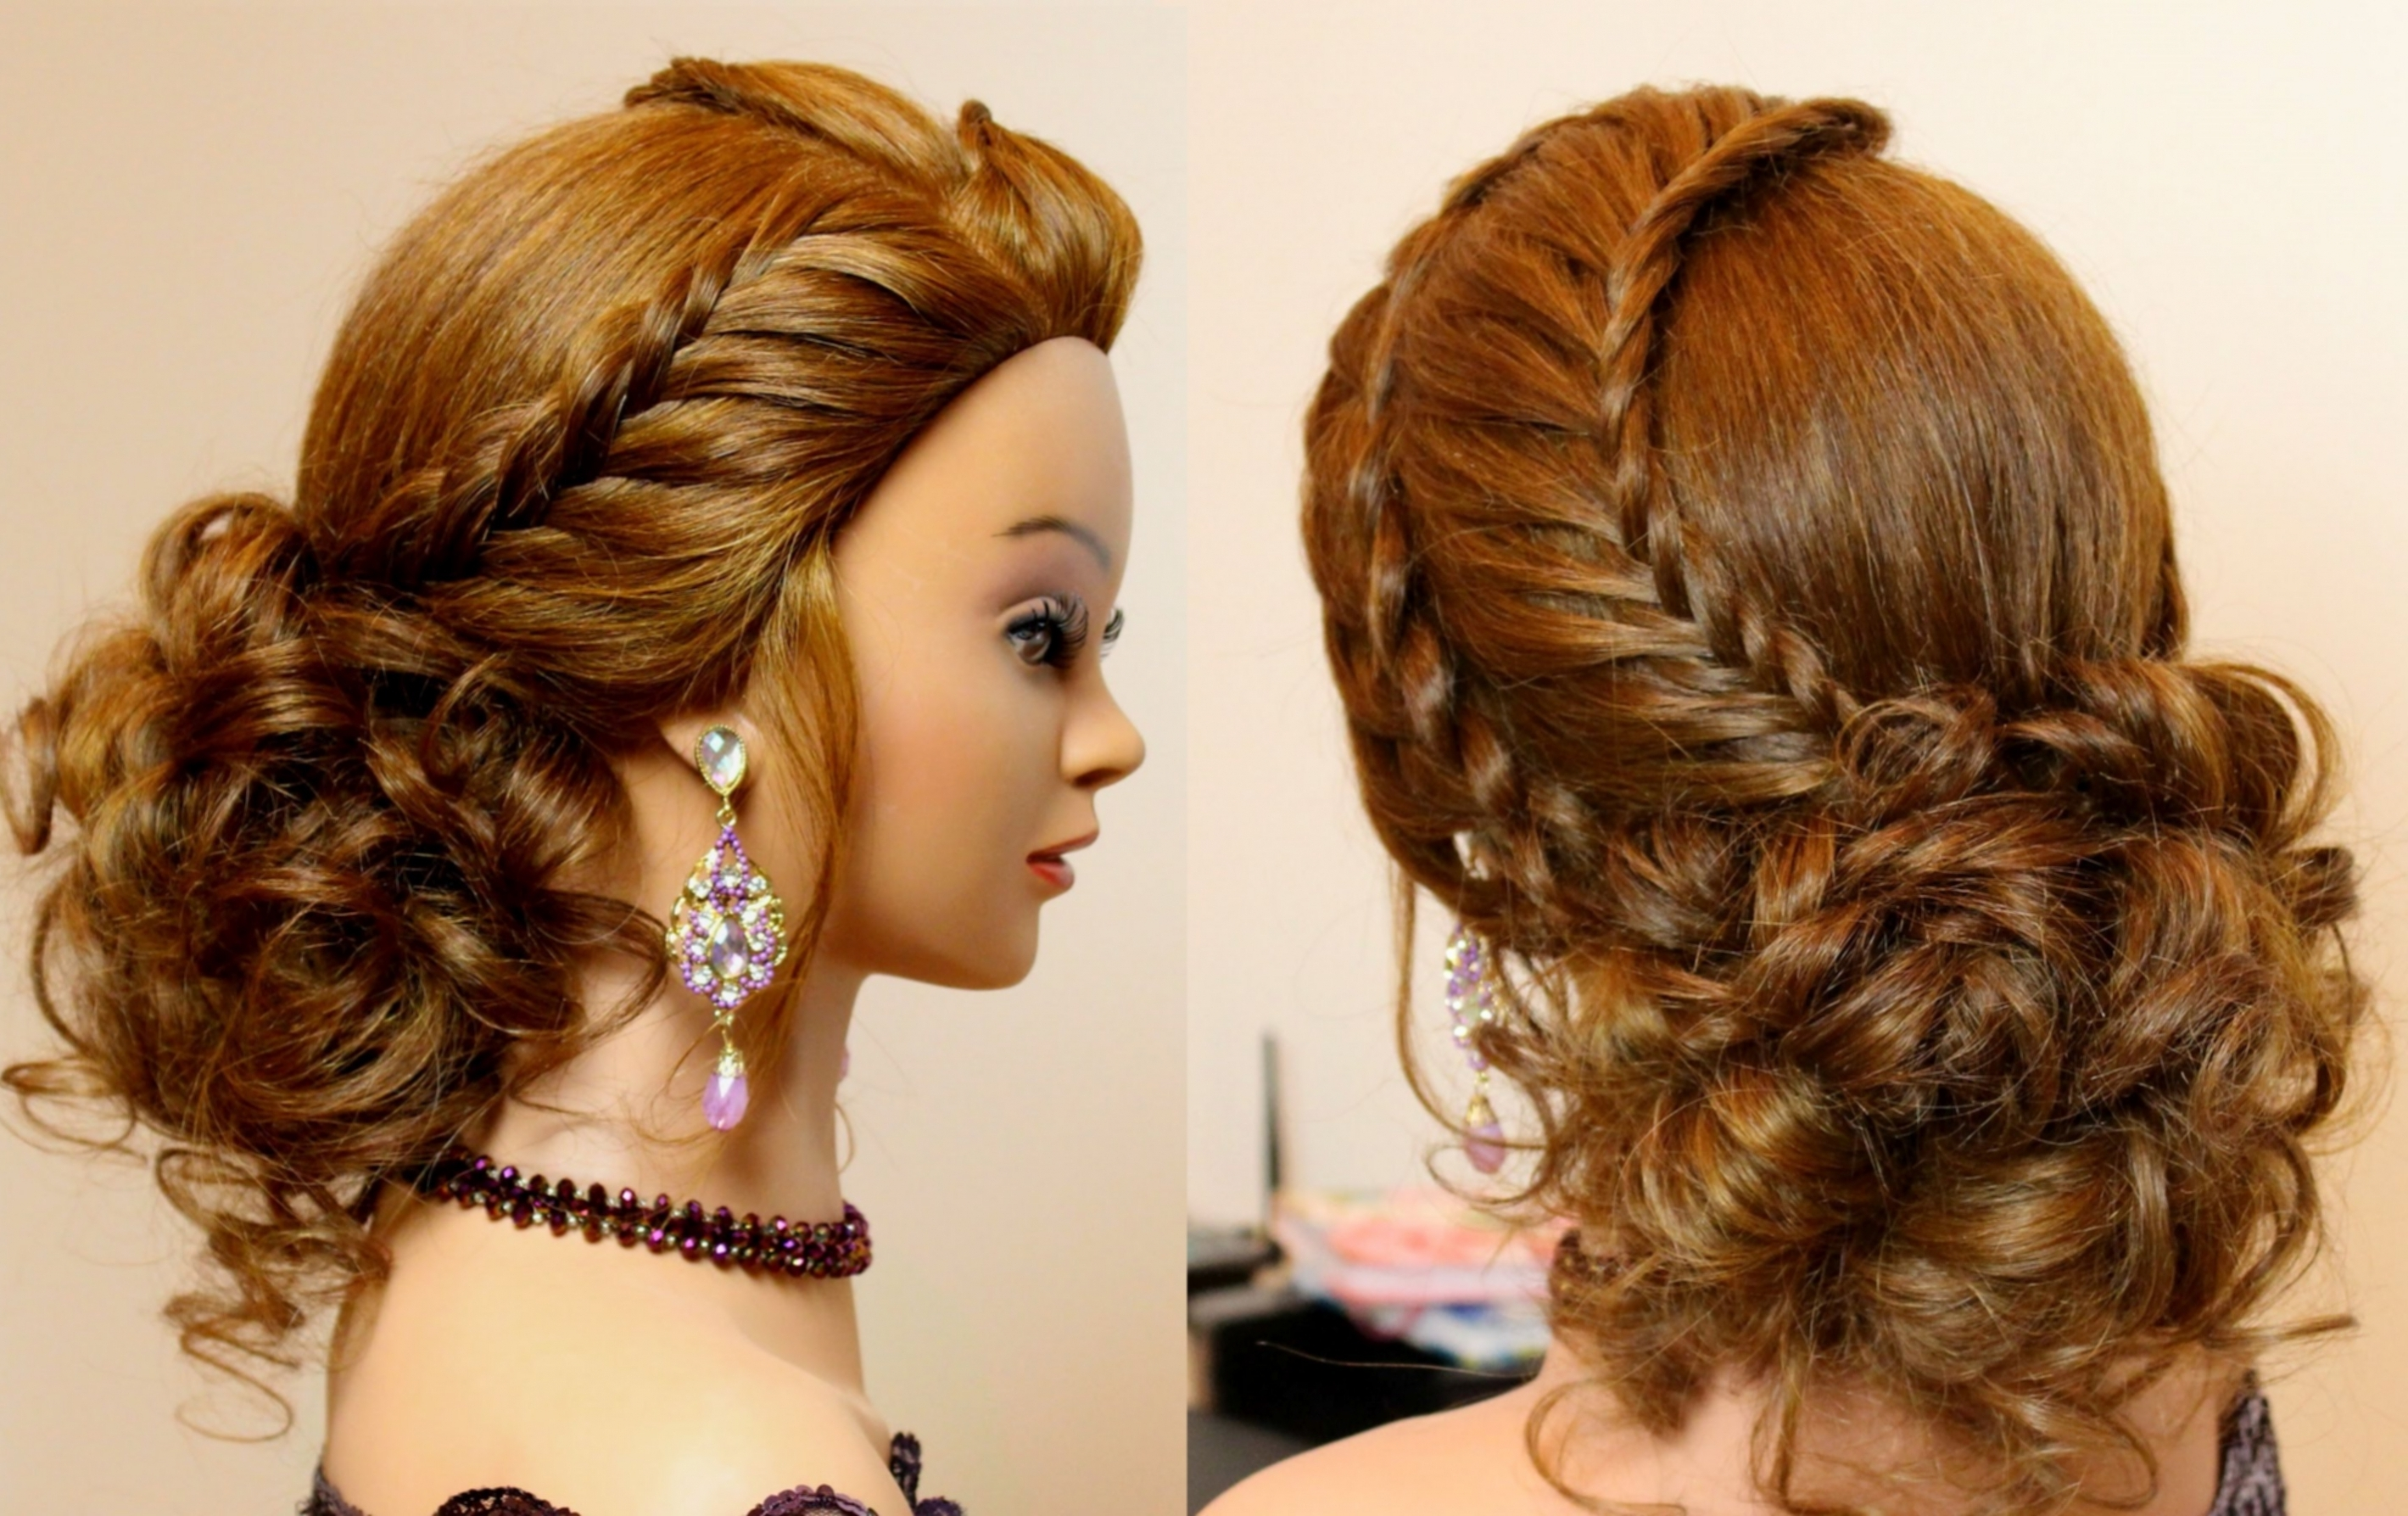 Prom Hairstyles Updos For Long Hair Hairstyles For Long Hair For With Regard To Hairstyles For Long Hair With Bangs Updos (View 9 of 15)